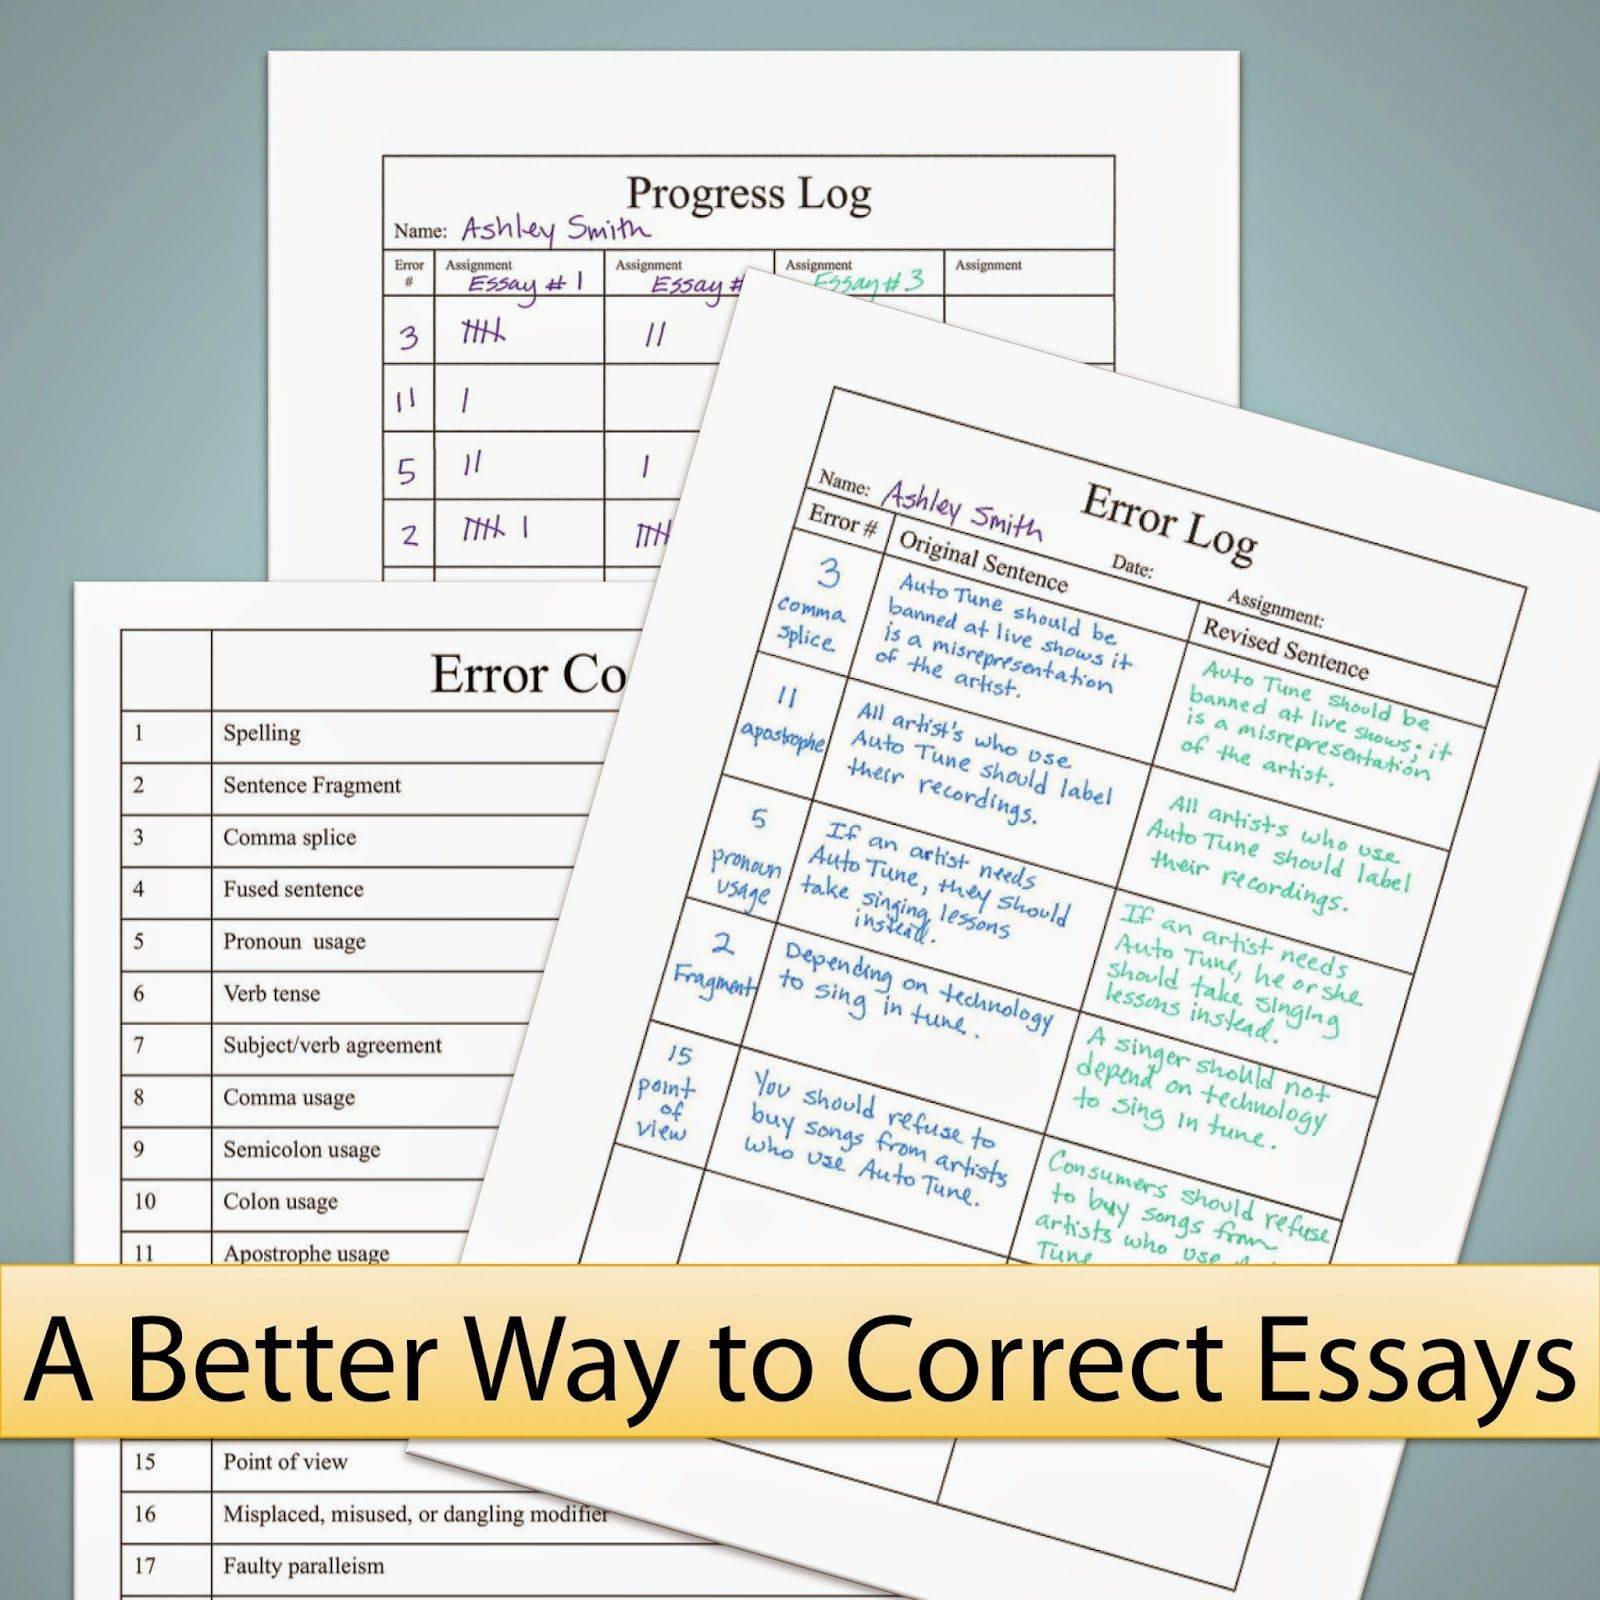 Writer Essay Stop Correcting And Start Coding To Increase Learning And Save Time Blog  Post From Composition Classroom Honor Code Essay also Essay Framework Stop Correcting And Start Coding To Increase Learning And Save Time  The Last Samurai Essay